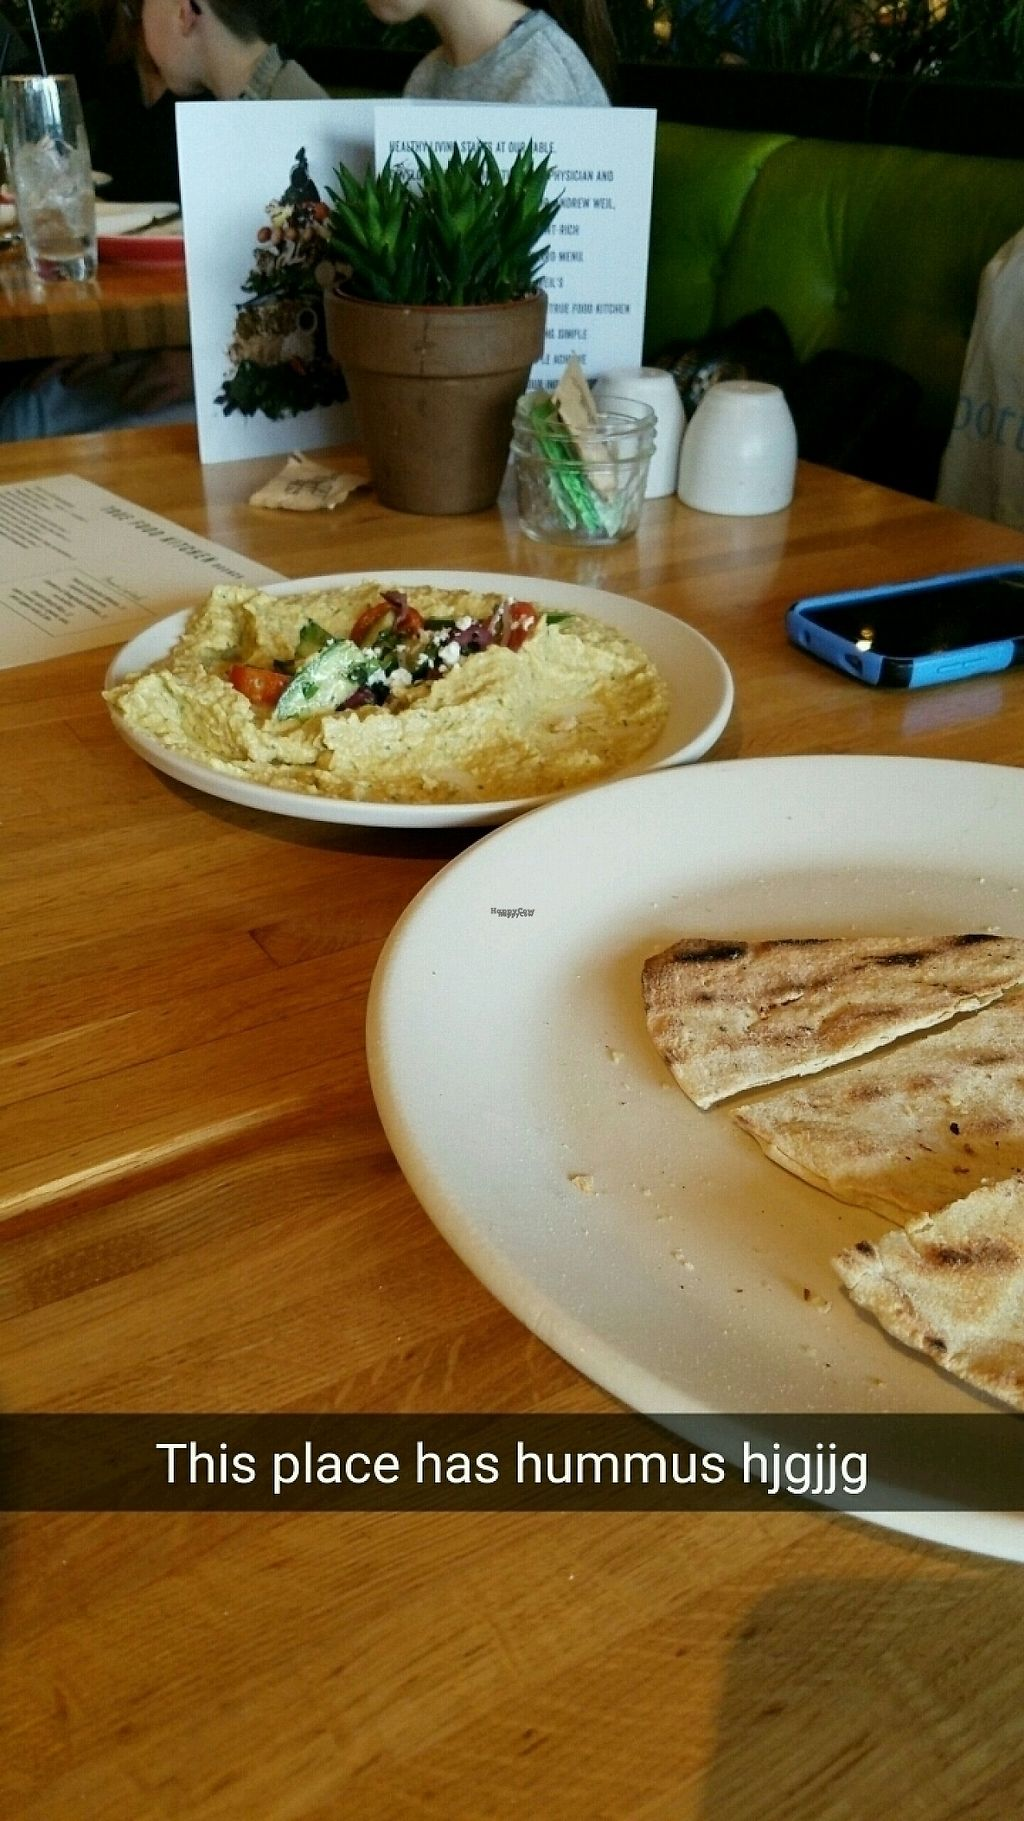 "Photo of True Food Kitchen  by <a href=""/members/profile/rachelgirl8"">rachelgirl8</a> <br/>hummus & pita <br/> March 12, 2017  - <a href='/contact/abuse/image/56993/235545'>Report</a>"